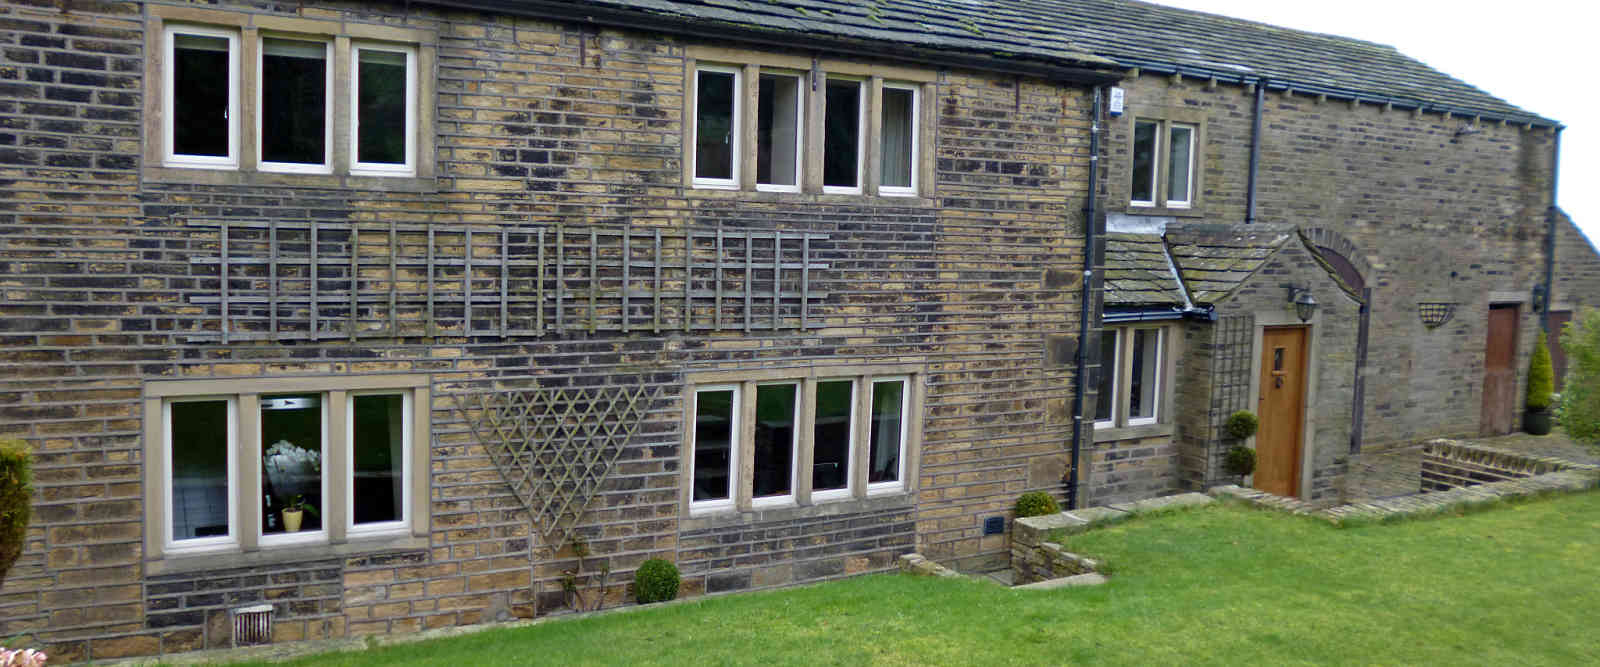 Heritage aluminium windows for listed property